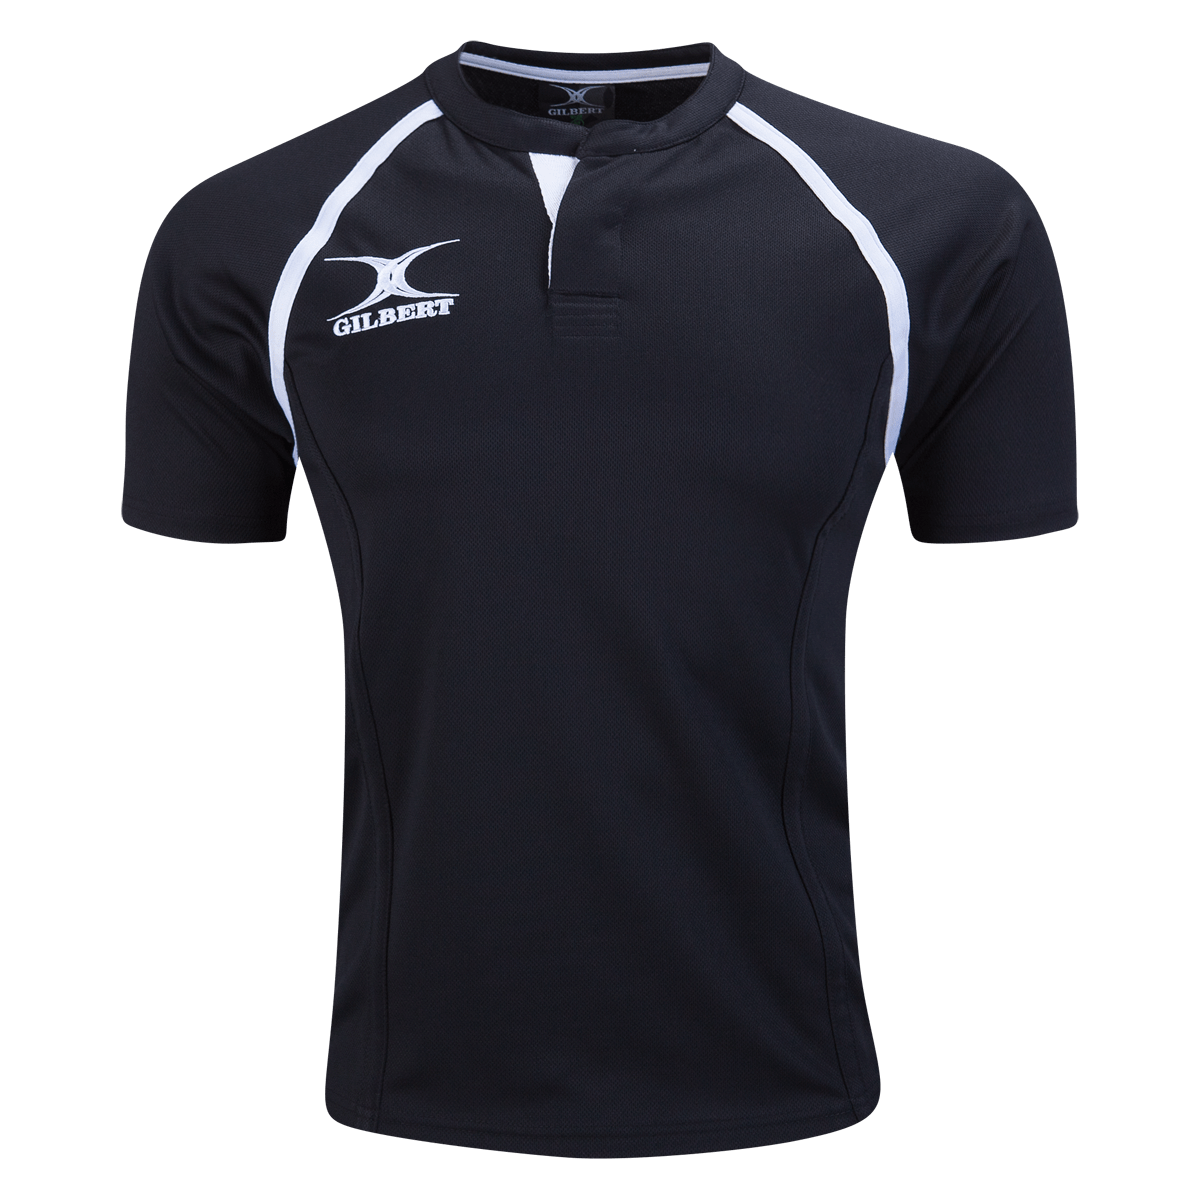 Gilbert Xact Premier Rugby Jersey Black